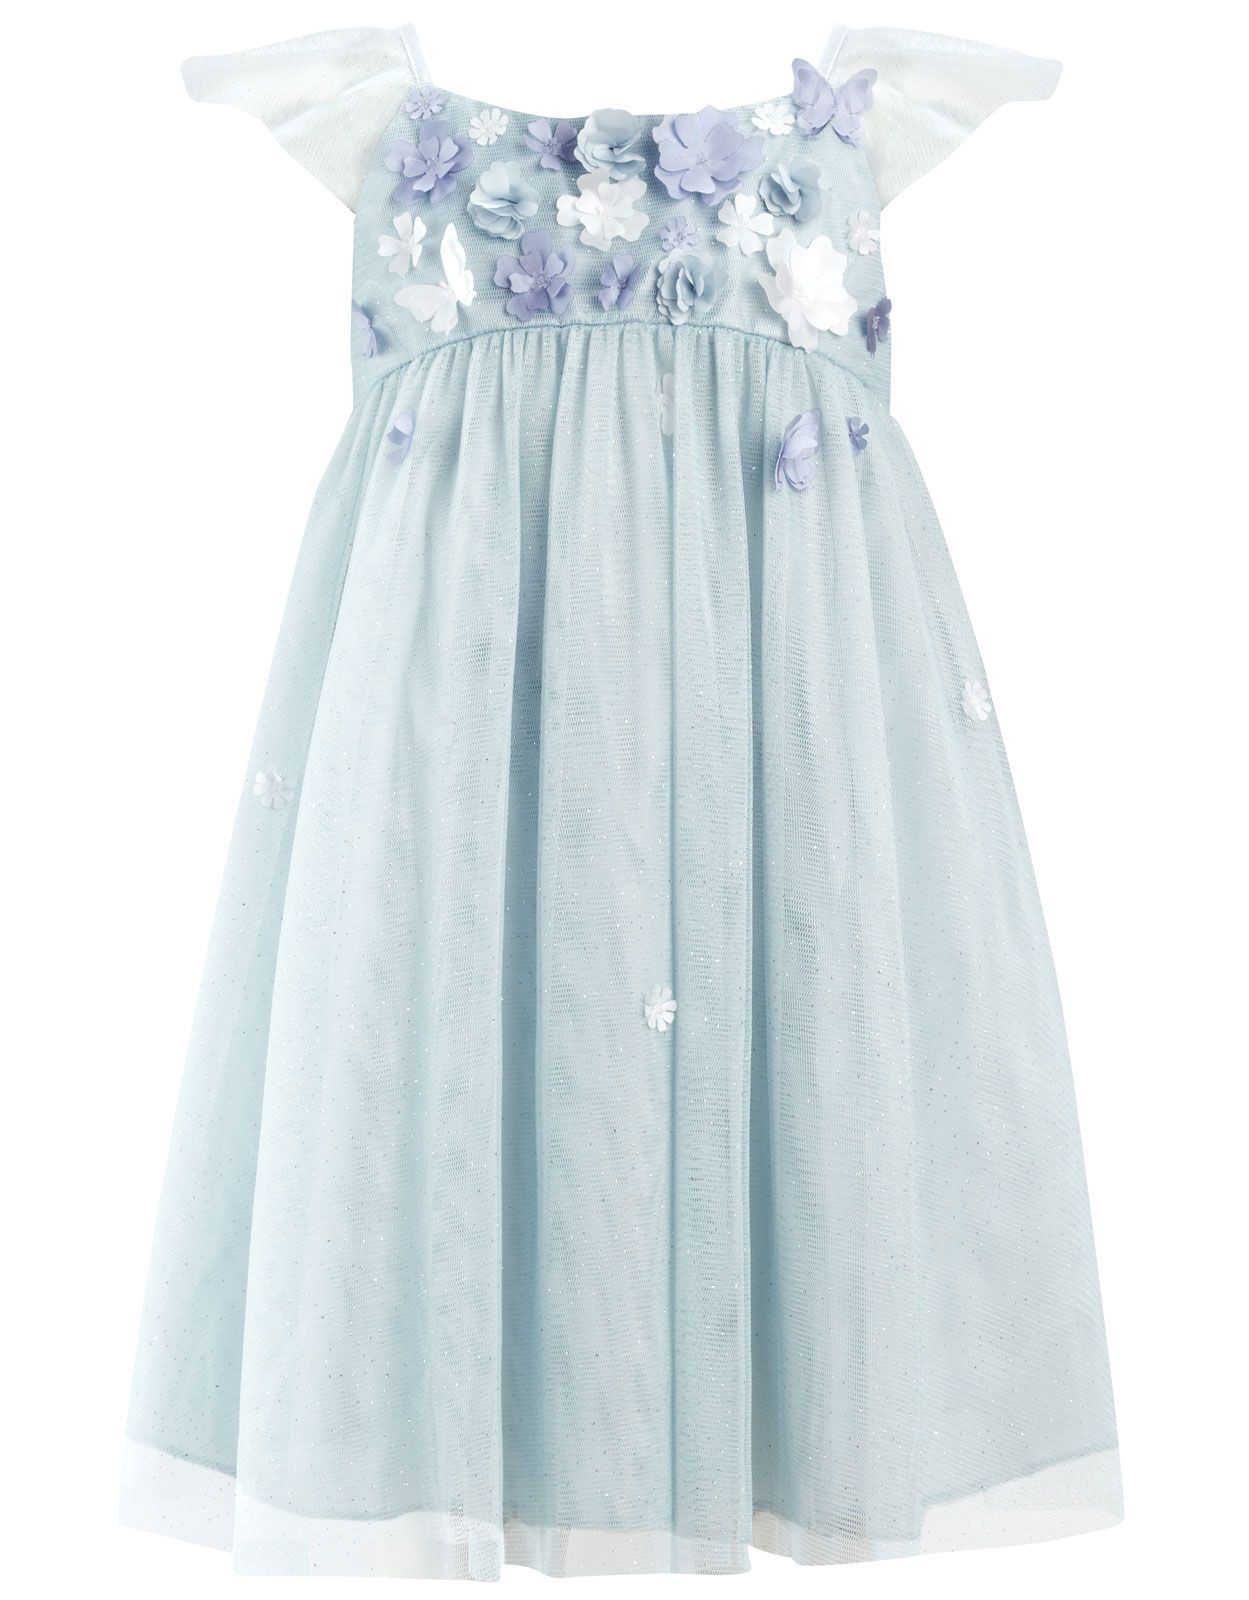 Baby Swift Dress- Monsoon | For Mila- Clothes & Such | Pinterest ...